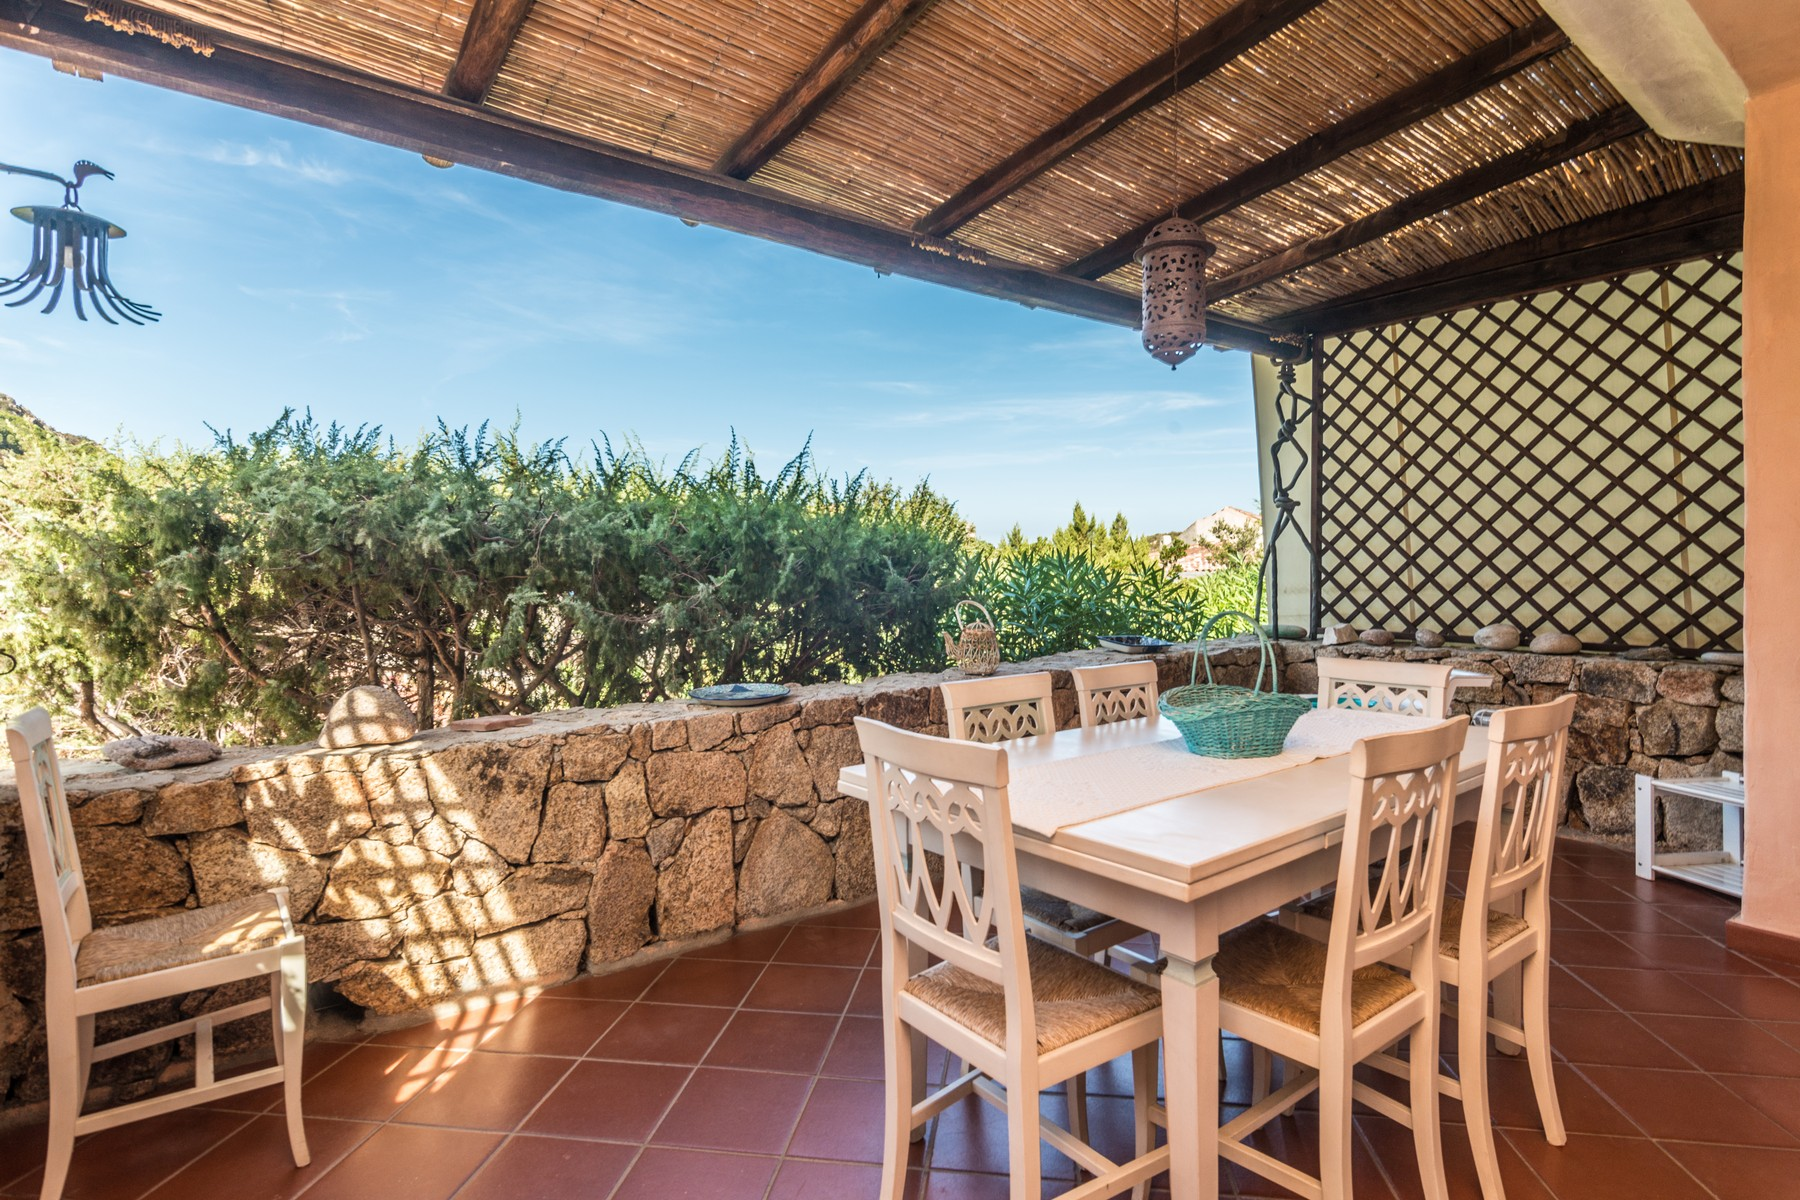 Apartment for Sale at Beautiful apartment in residence with sea view Porto Cervo Porto Cervo, 07020 Italy